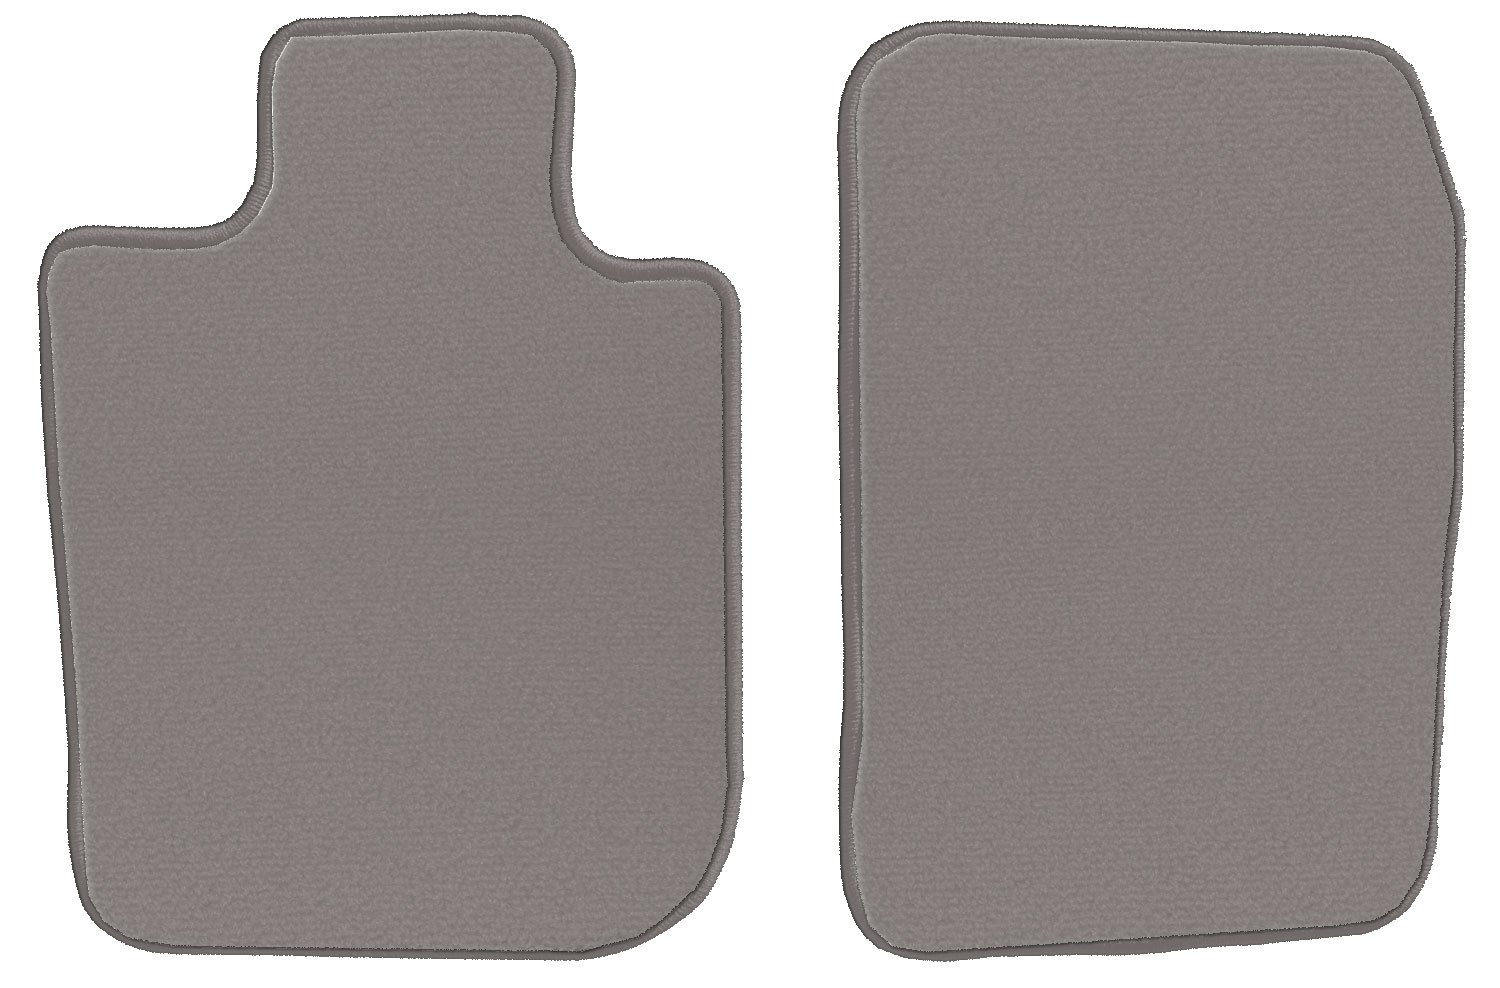 GGBAILEY D2935A-F1A-GY-LP Custom Fit Automotive Carpet Floor Mats for 1999 2001 2000 2002 Daewoo Lanos Grey Loop Driver /& Passenger